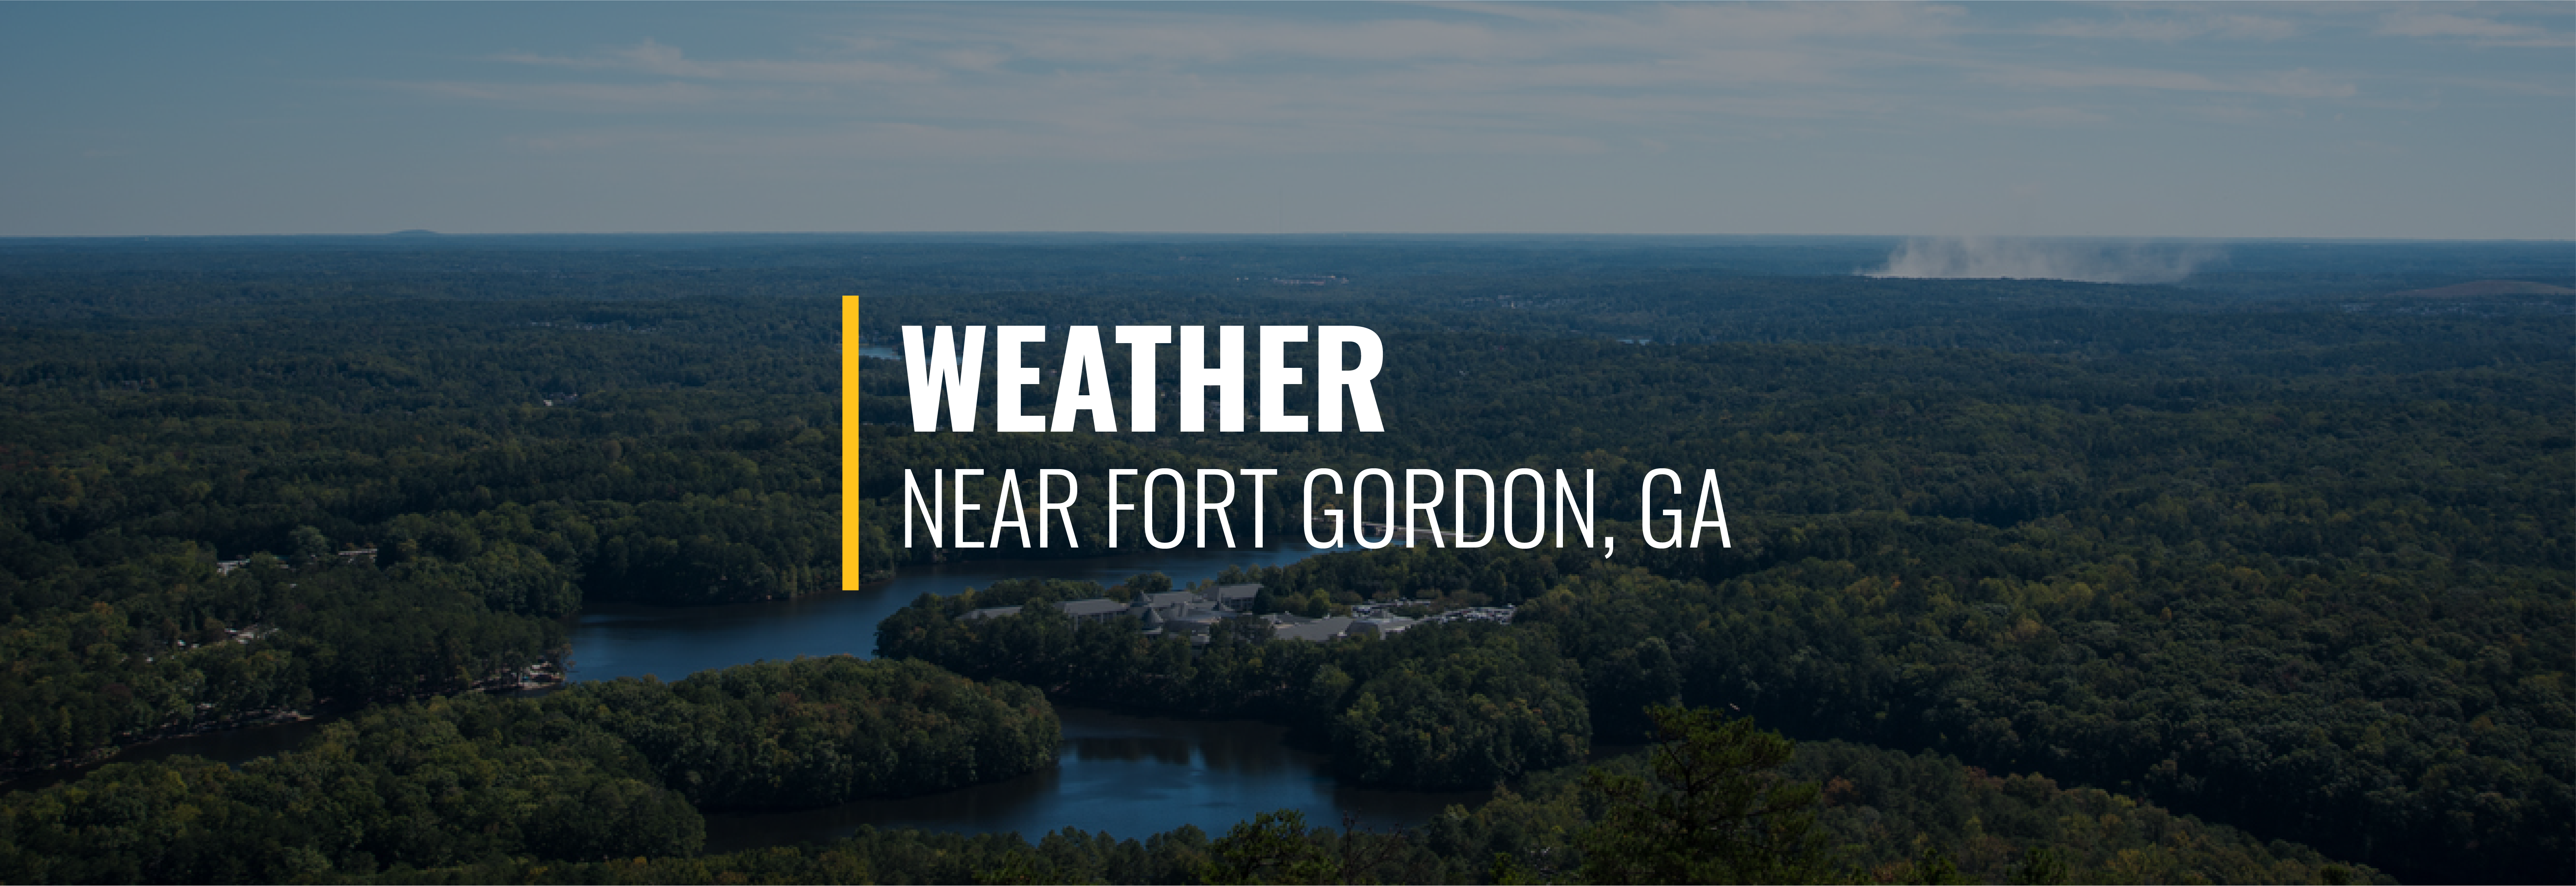 Fort Gordon Weather